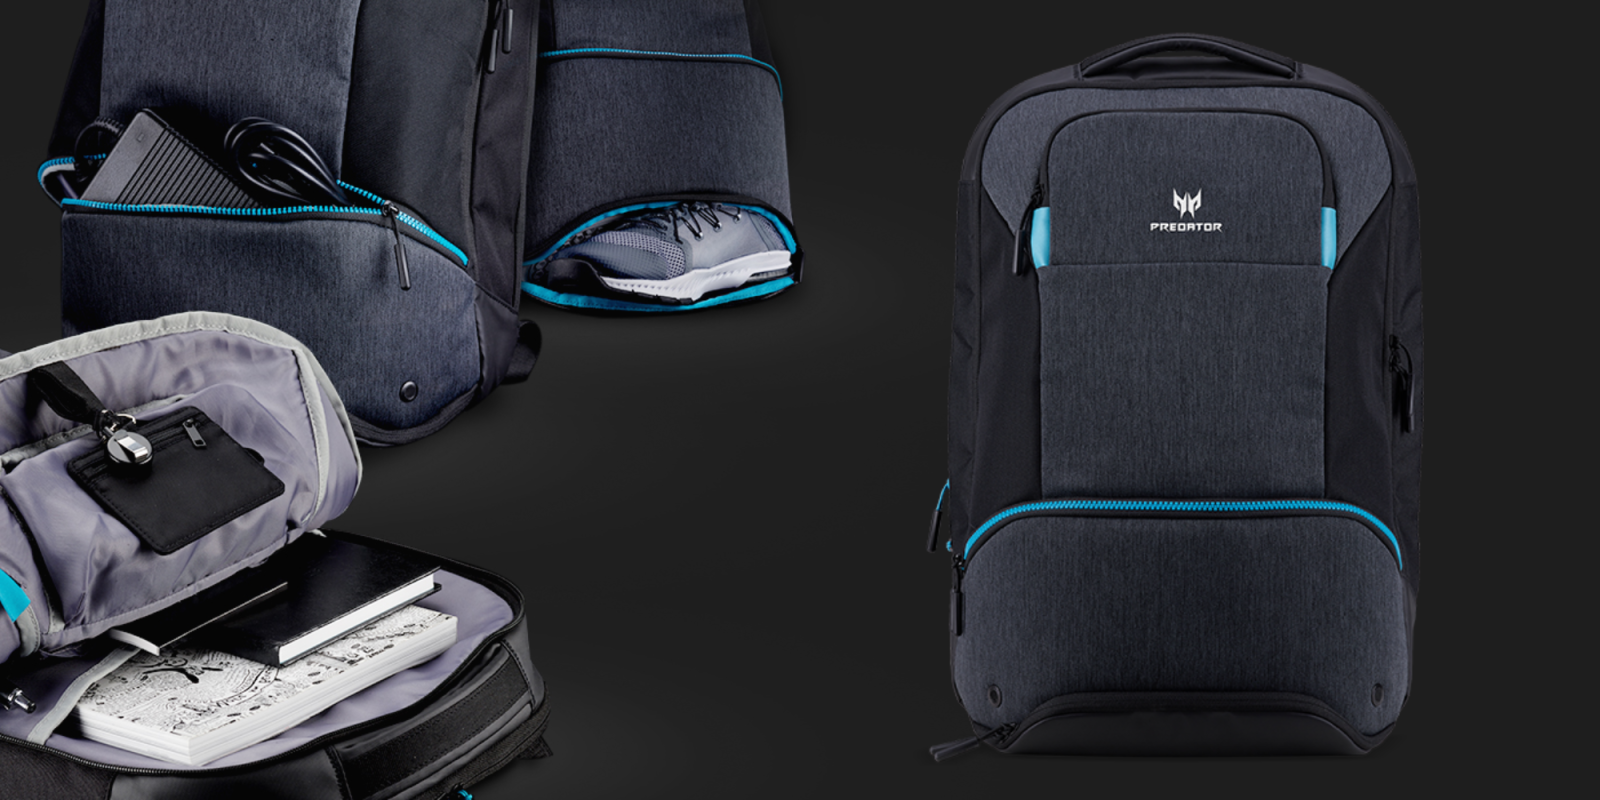 Save 35% on Acer's Predator Gaming Laptop Hybrid Backpack at a new low of $64.50 shipped